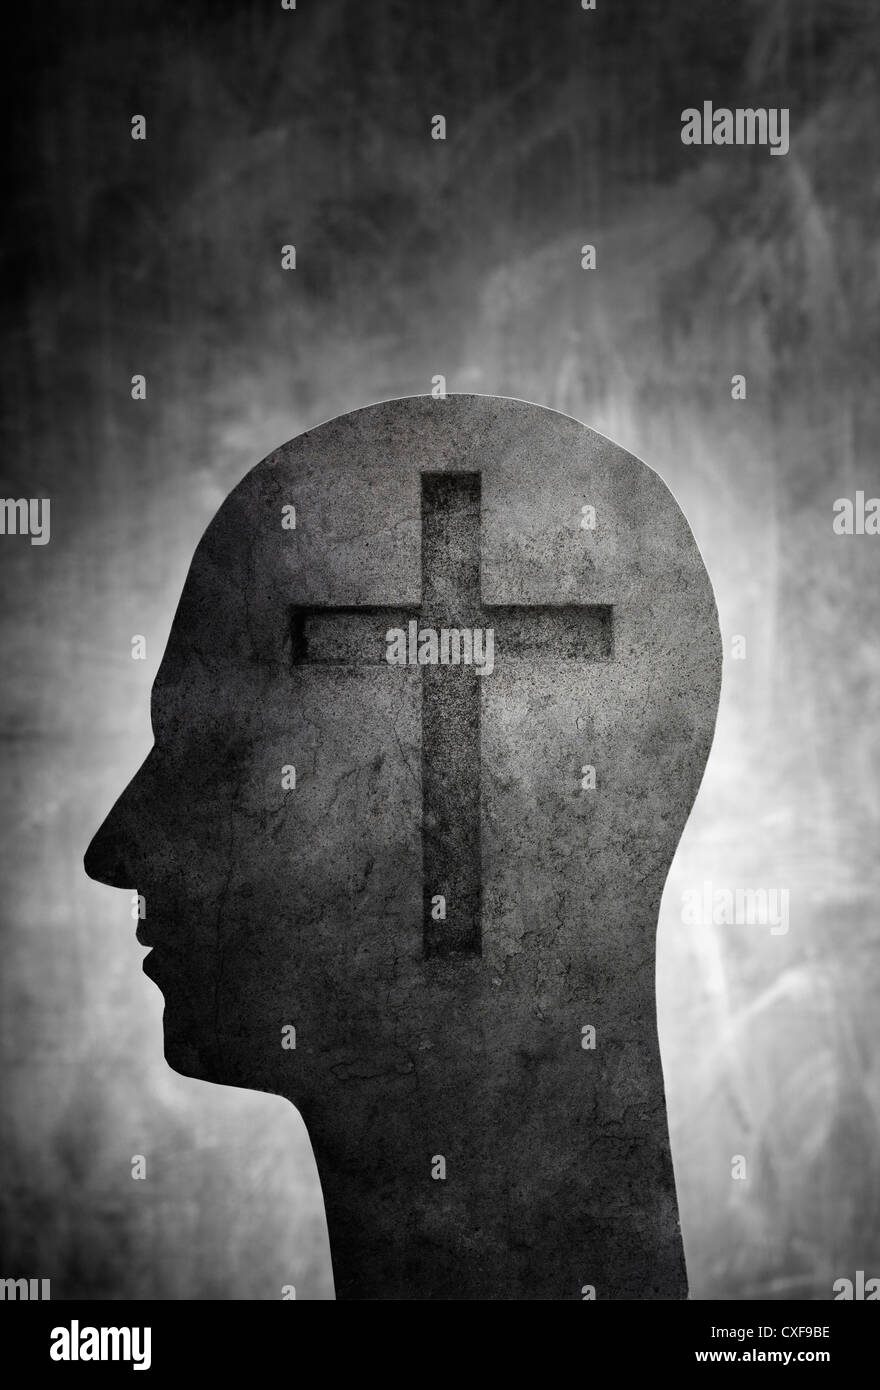 Conceptual image of a head with a christian cross symbol. - Stock Image